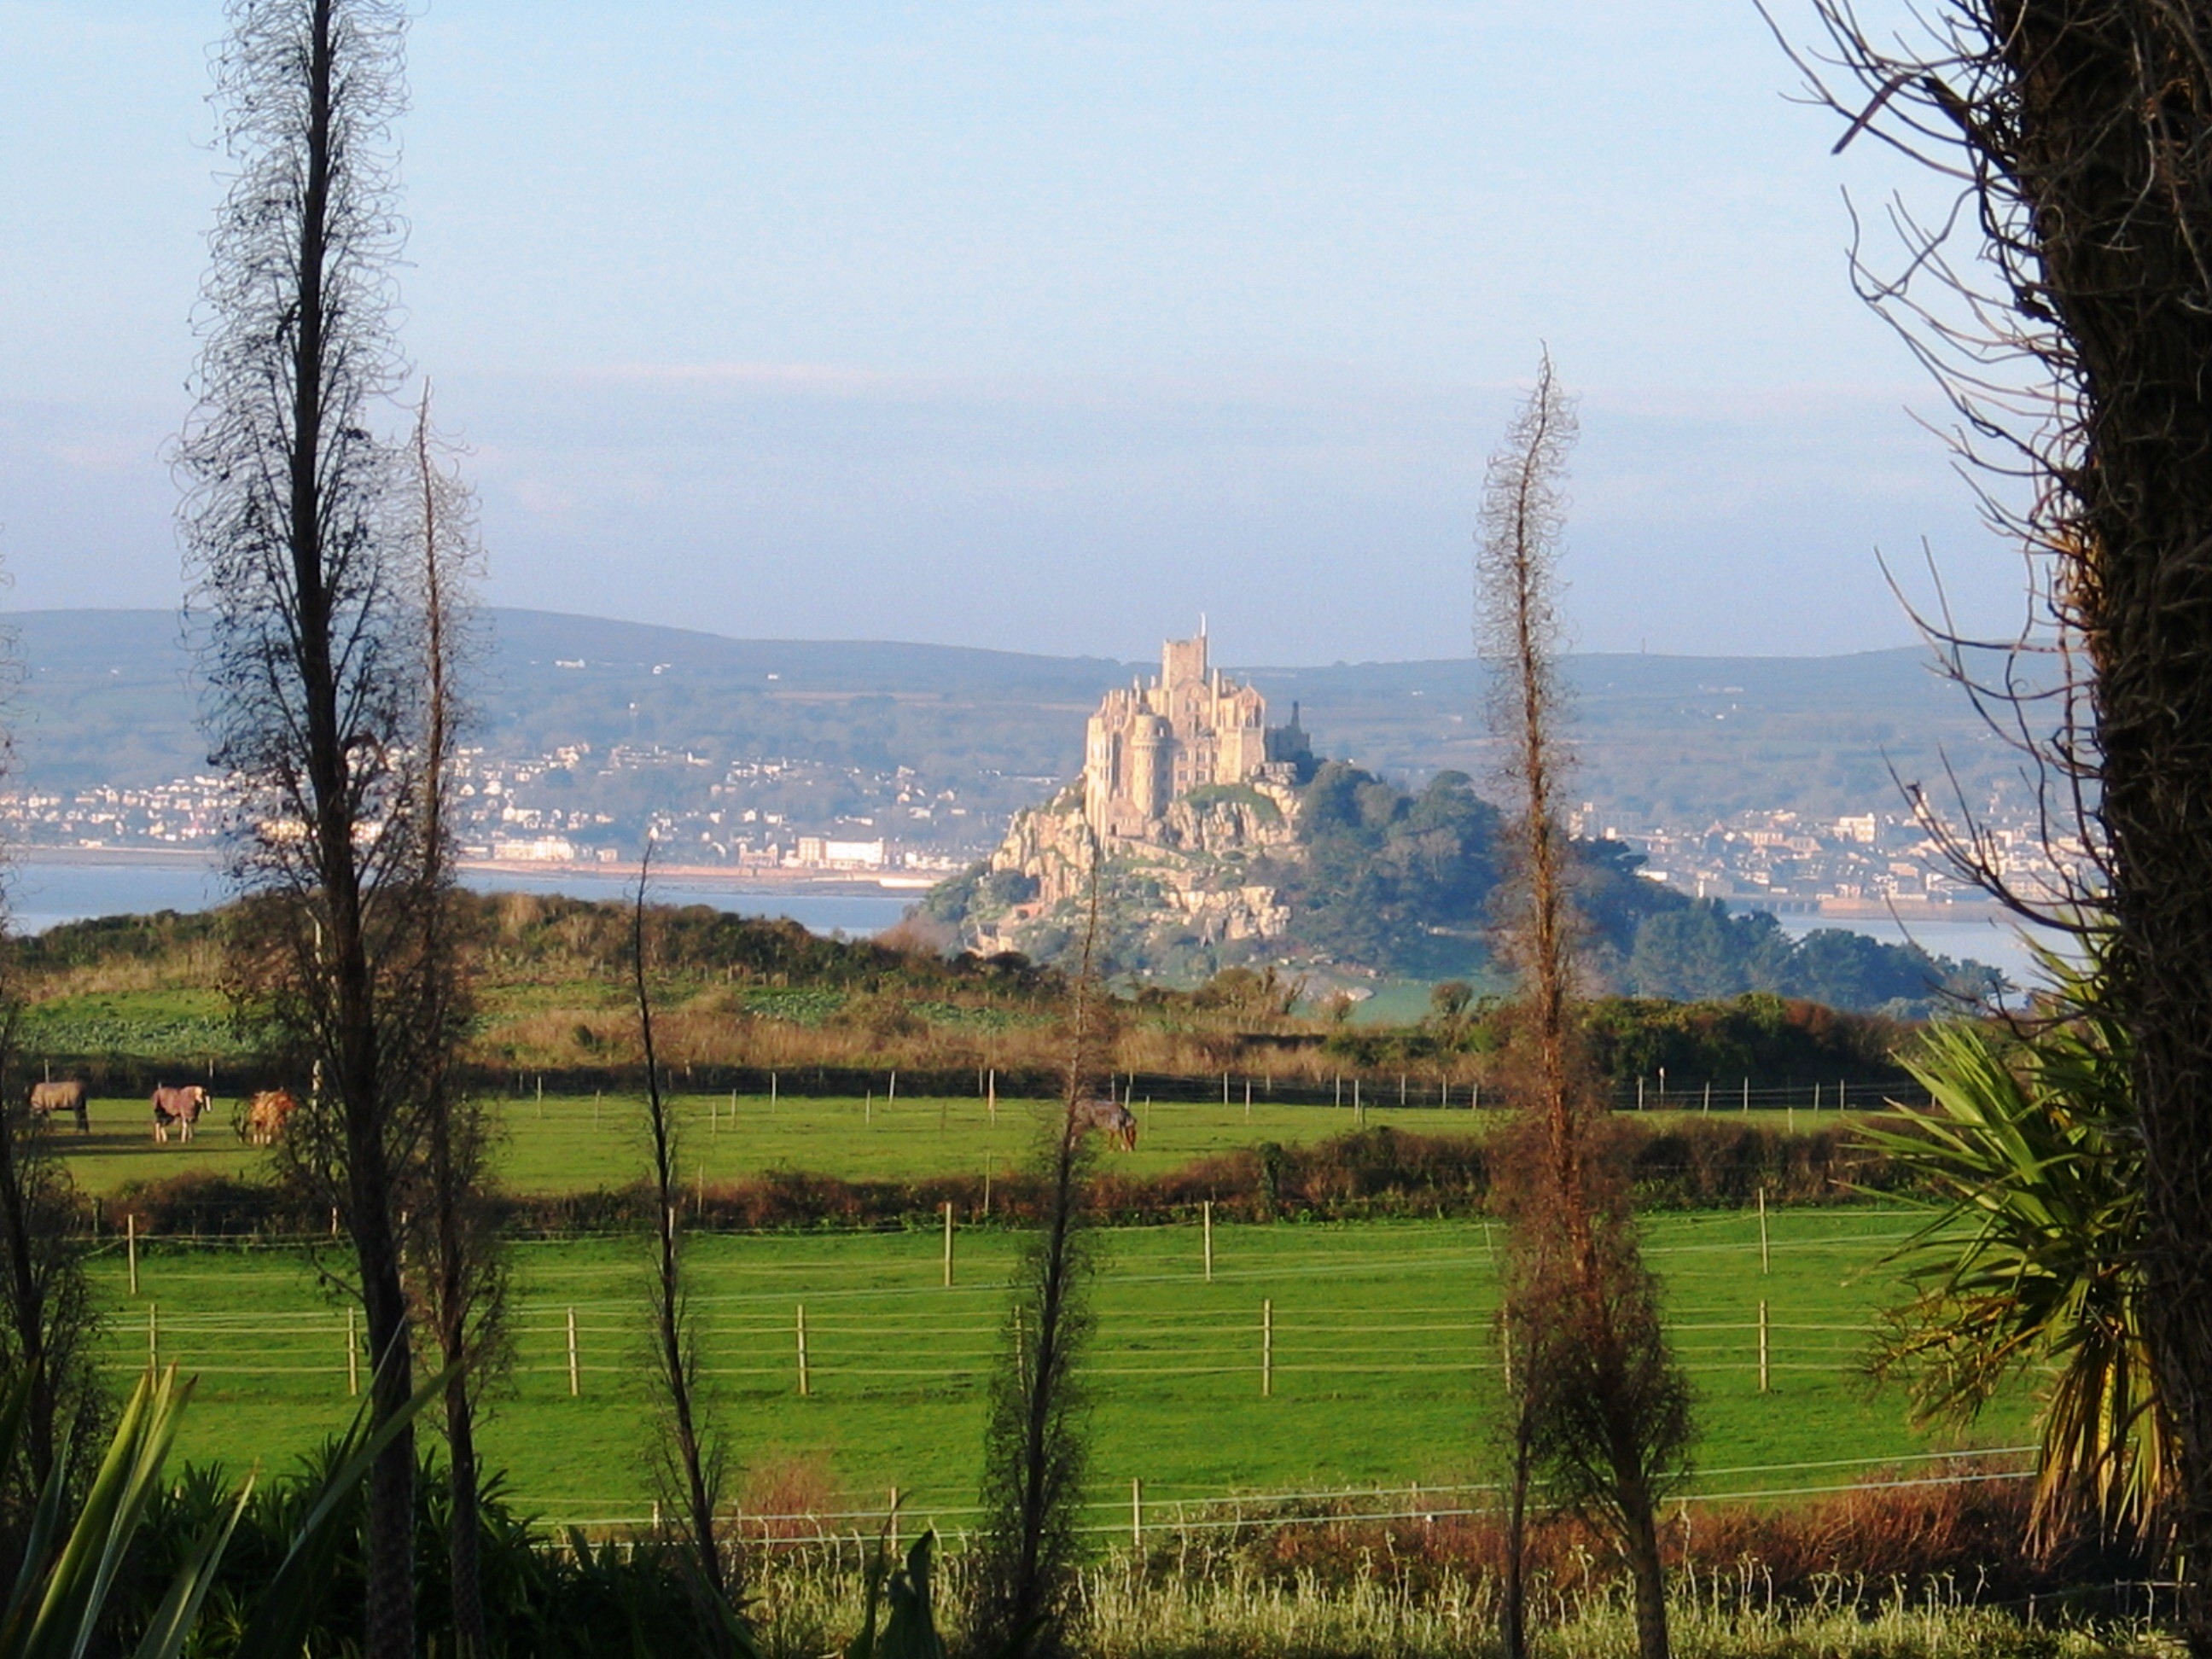 Penzance across Mounts bay from Ednovean Farm